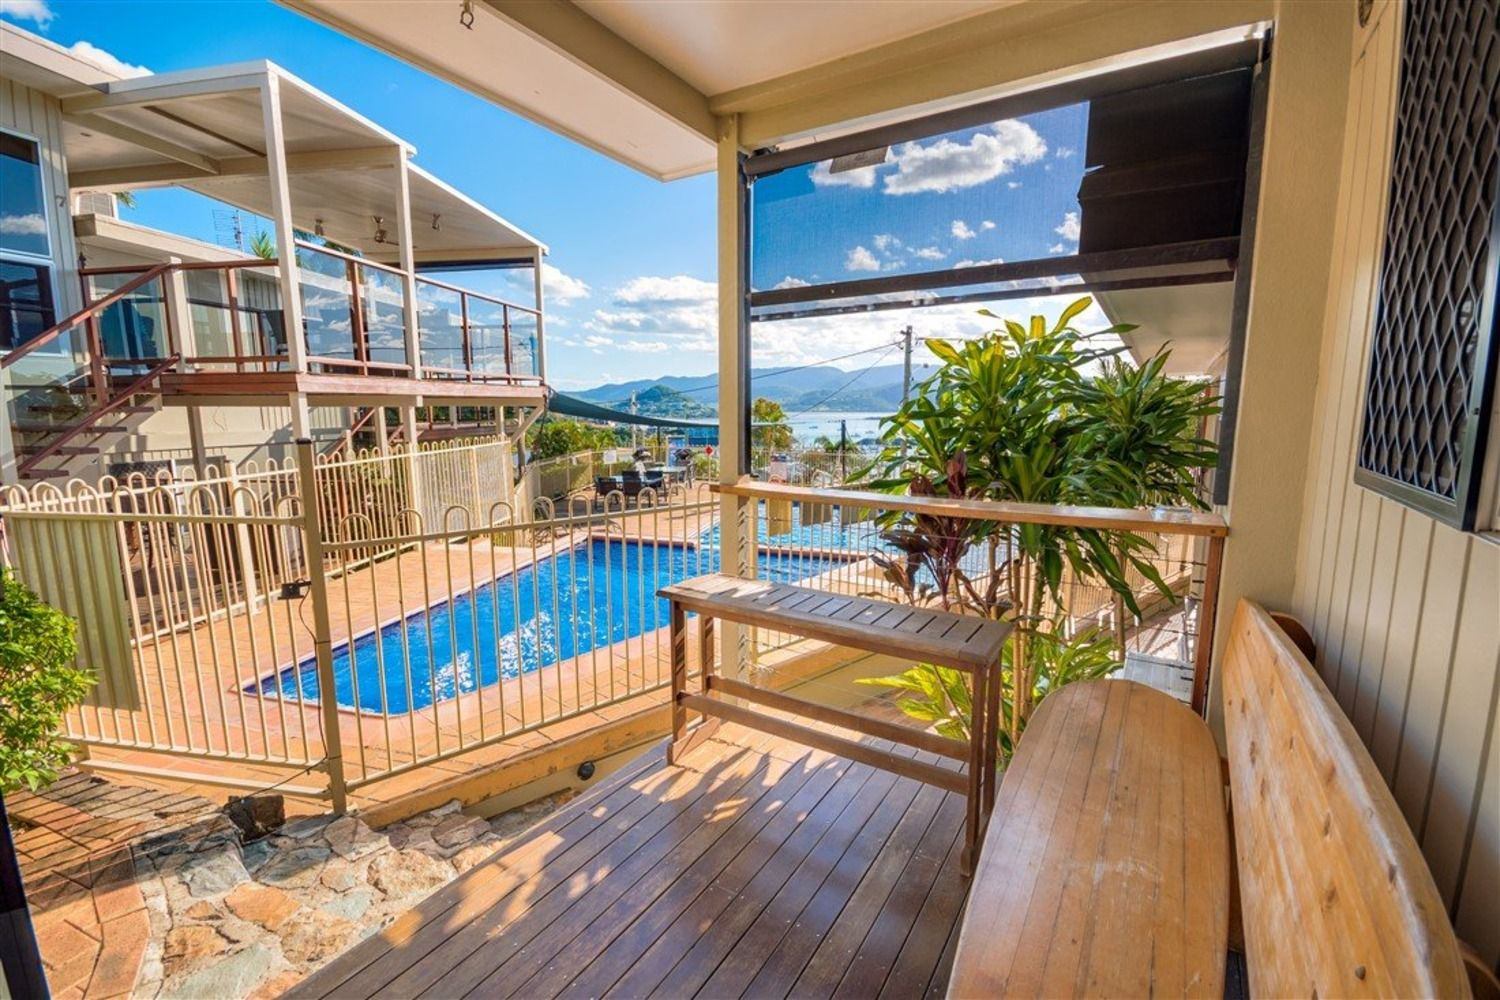 3/22 Airlie Crescent, Airlie Beach QLD 4802, Image 0